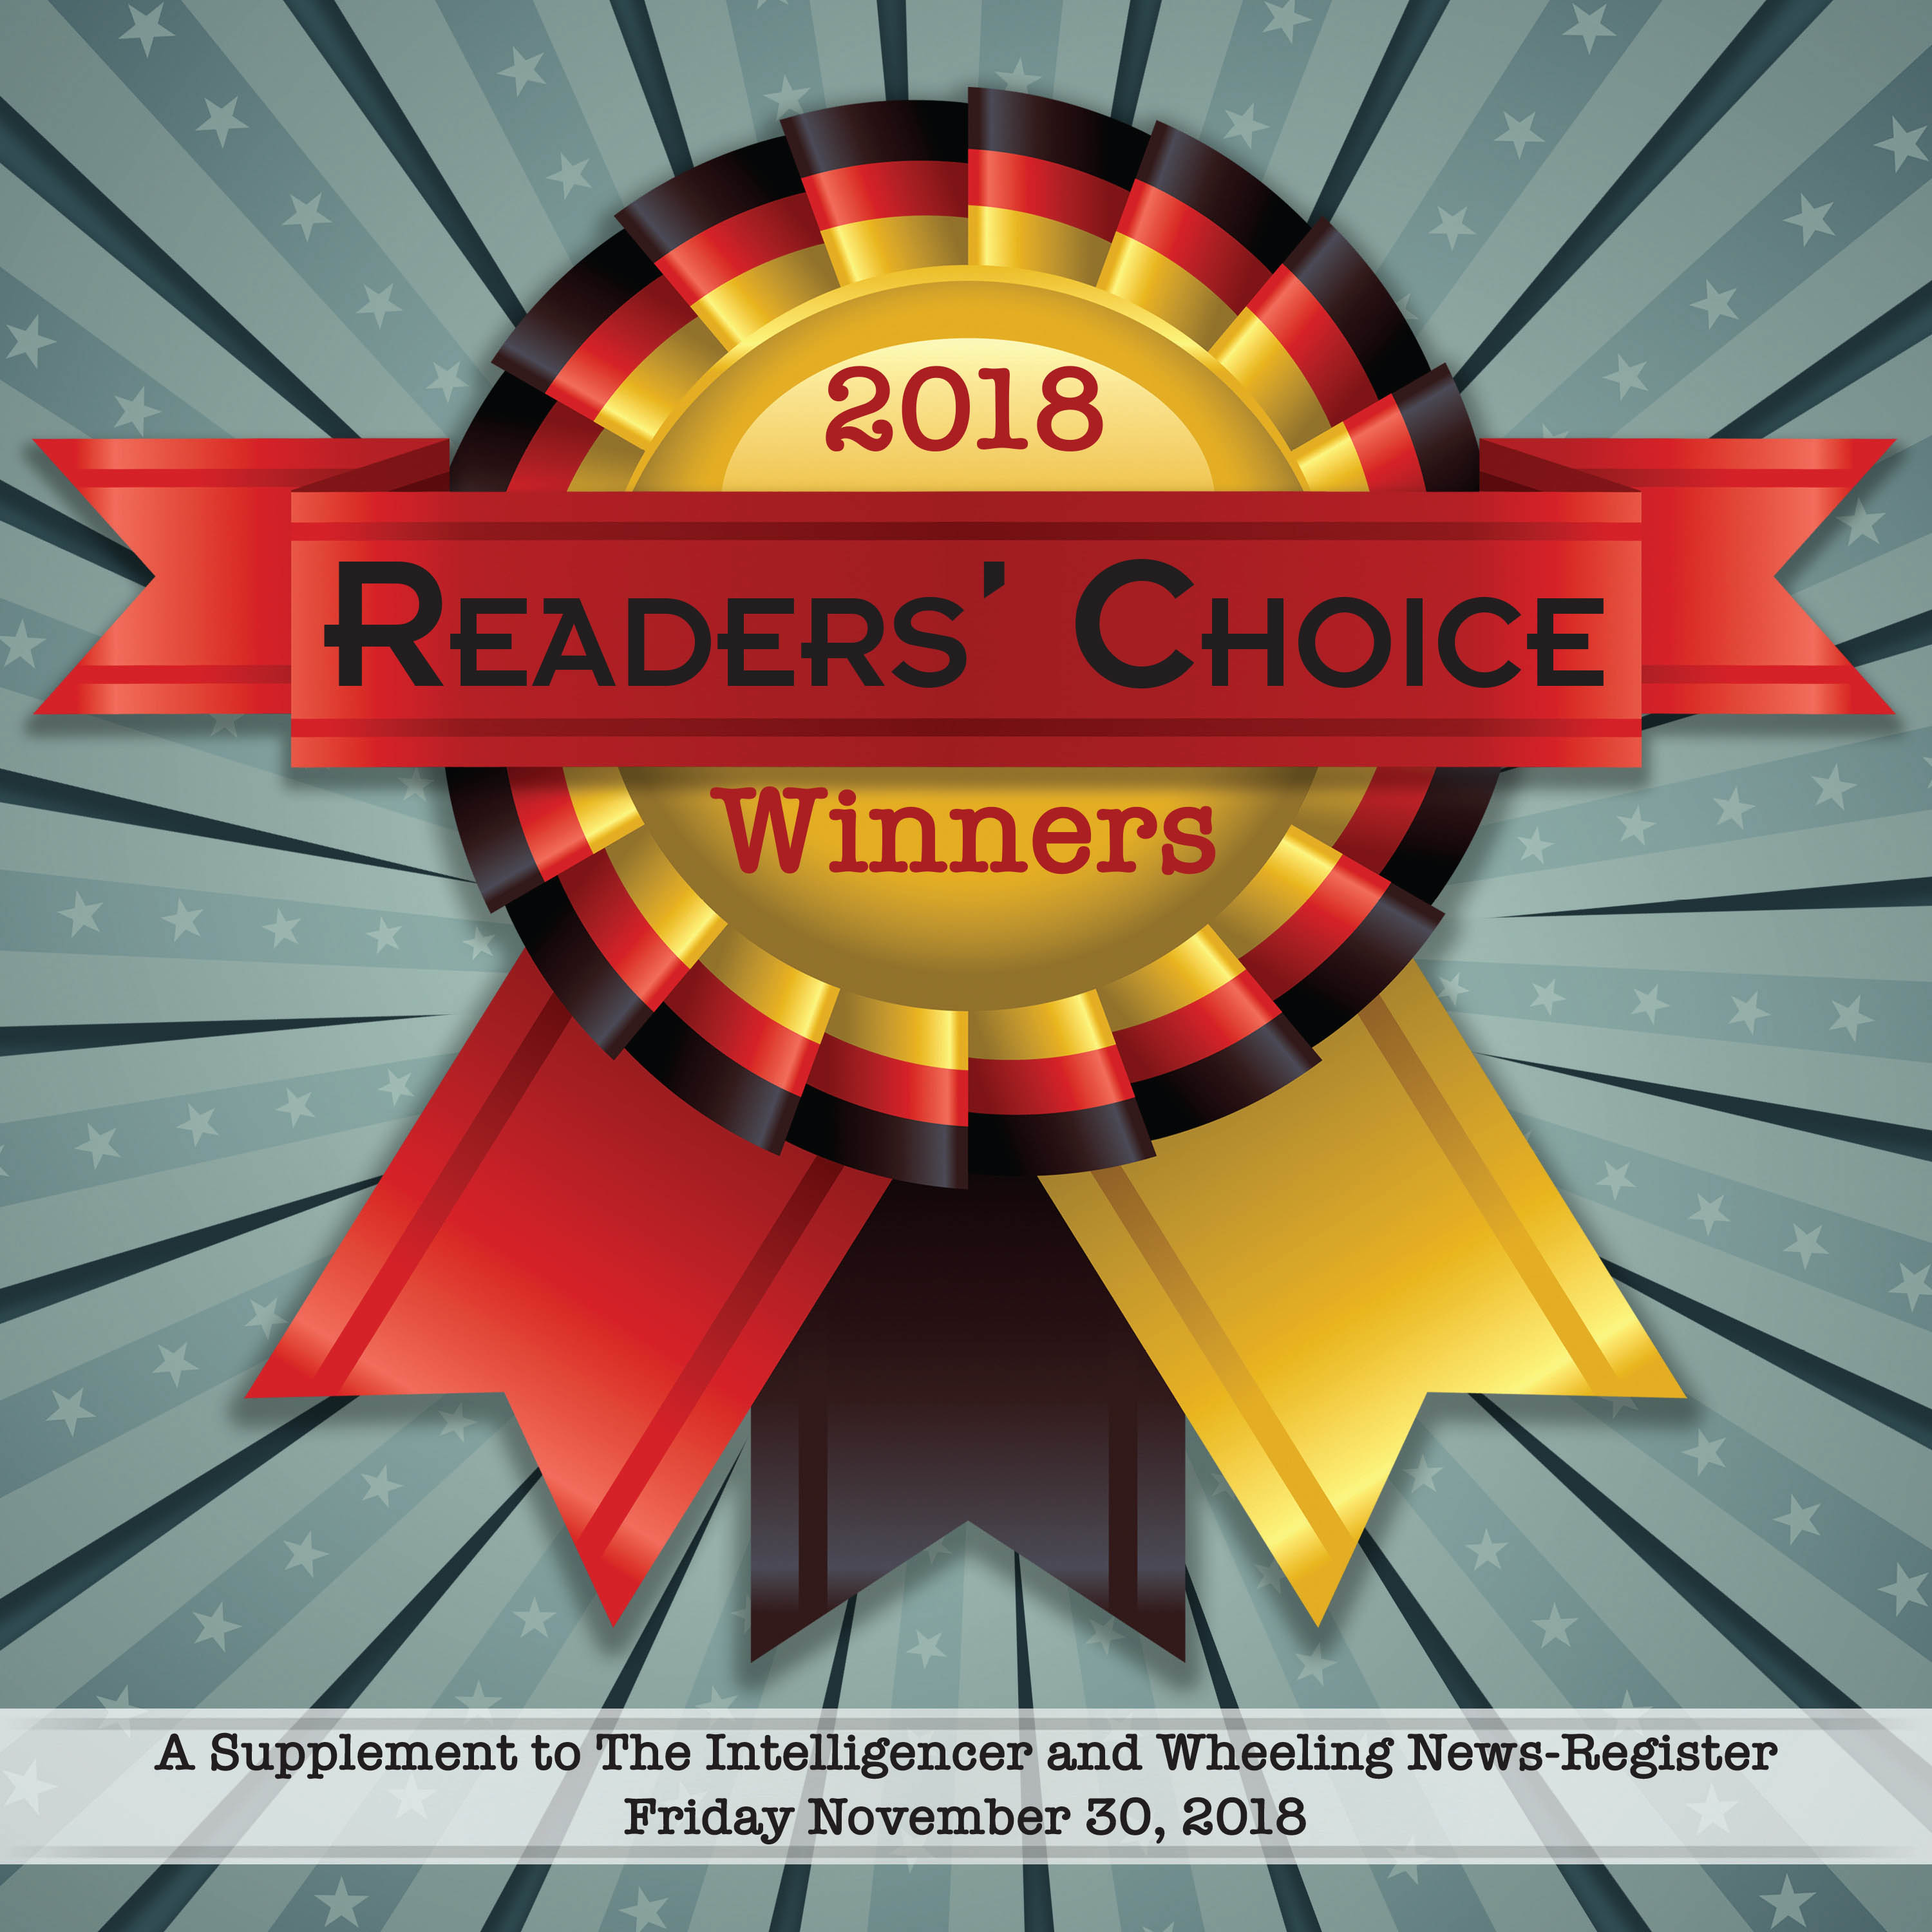 2018 Readers' Choice Winners